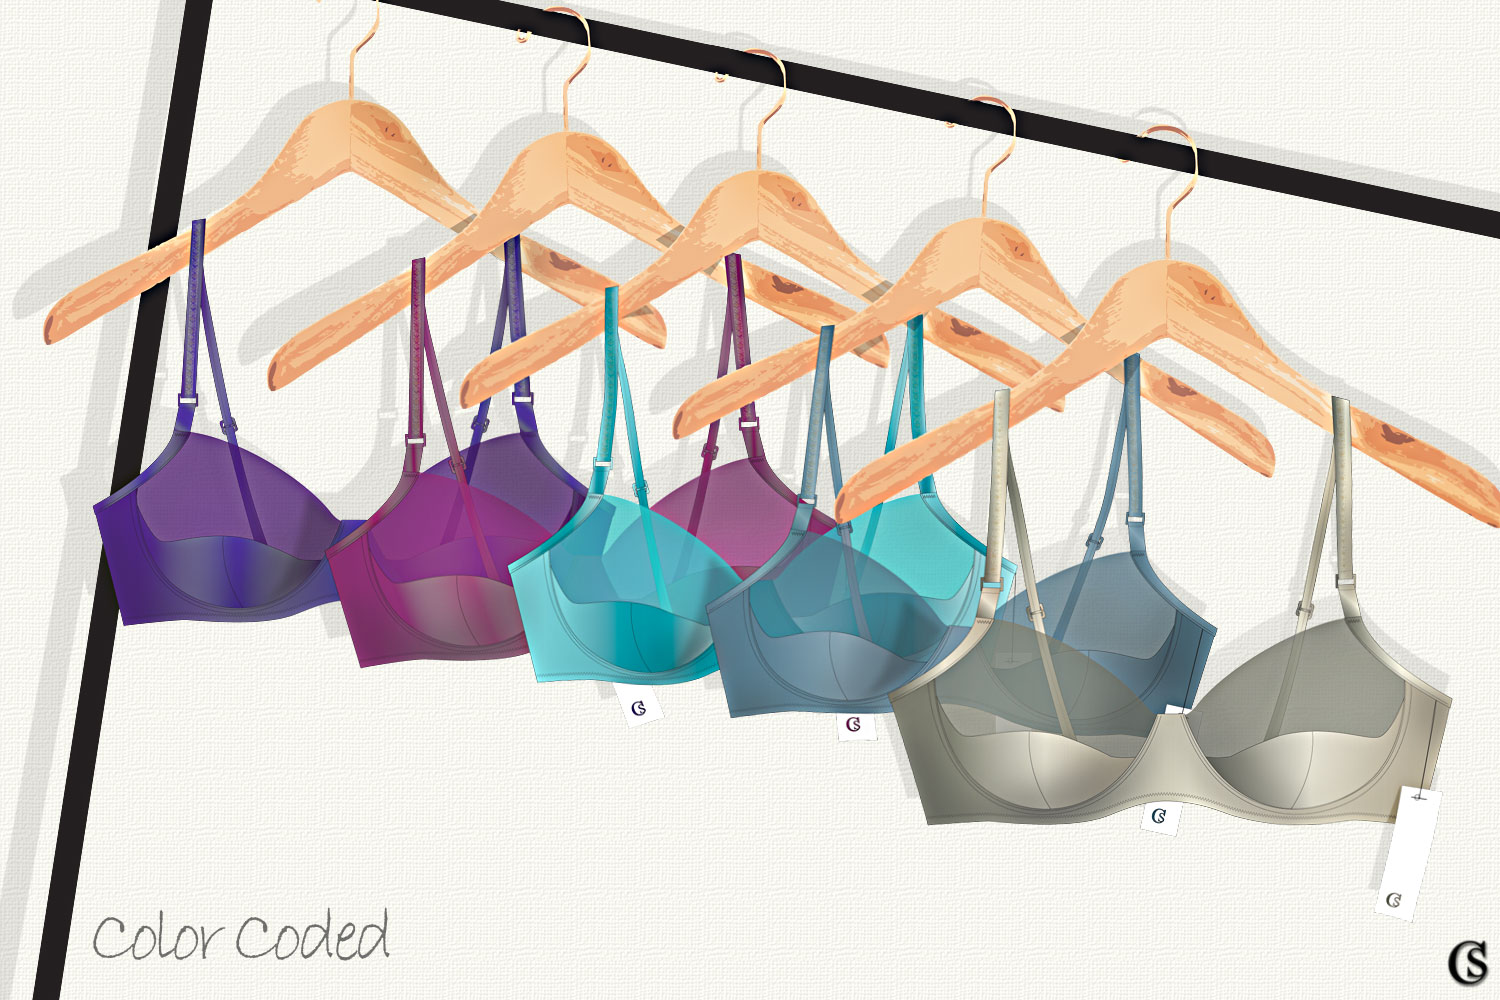 Color Coded lingerie illustrations, CHIARIstyle